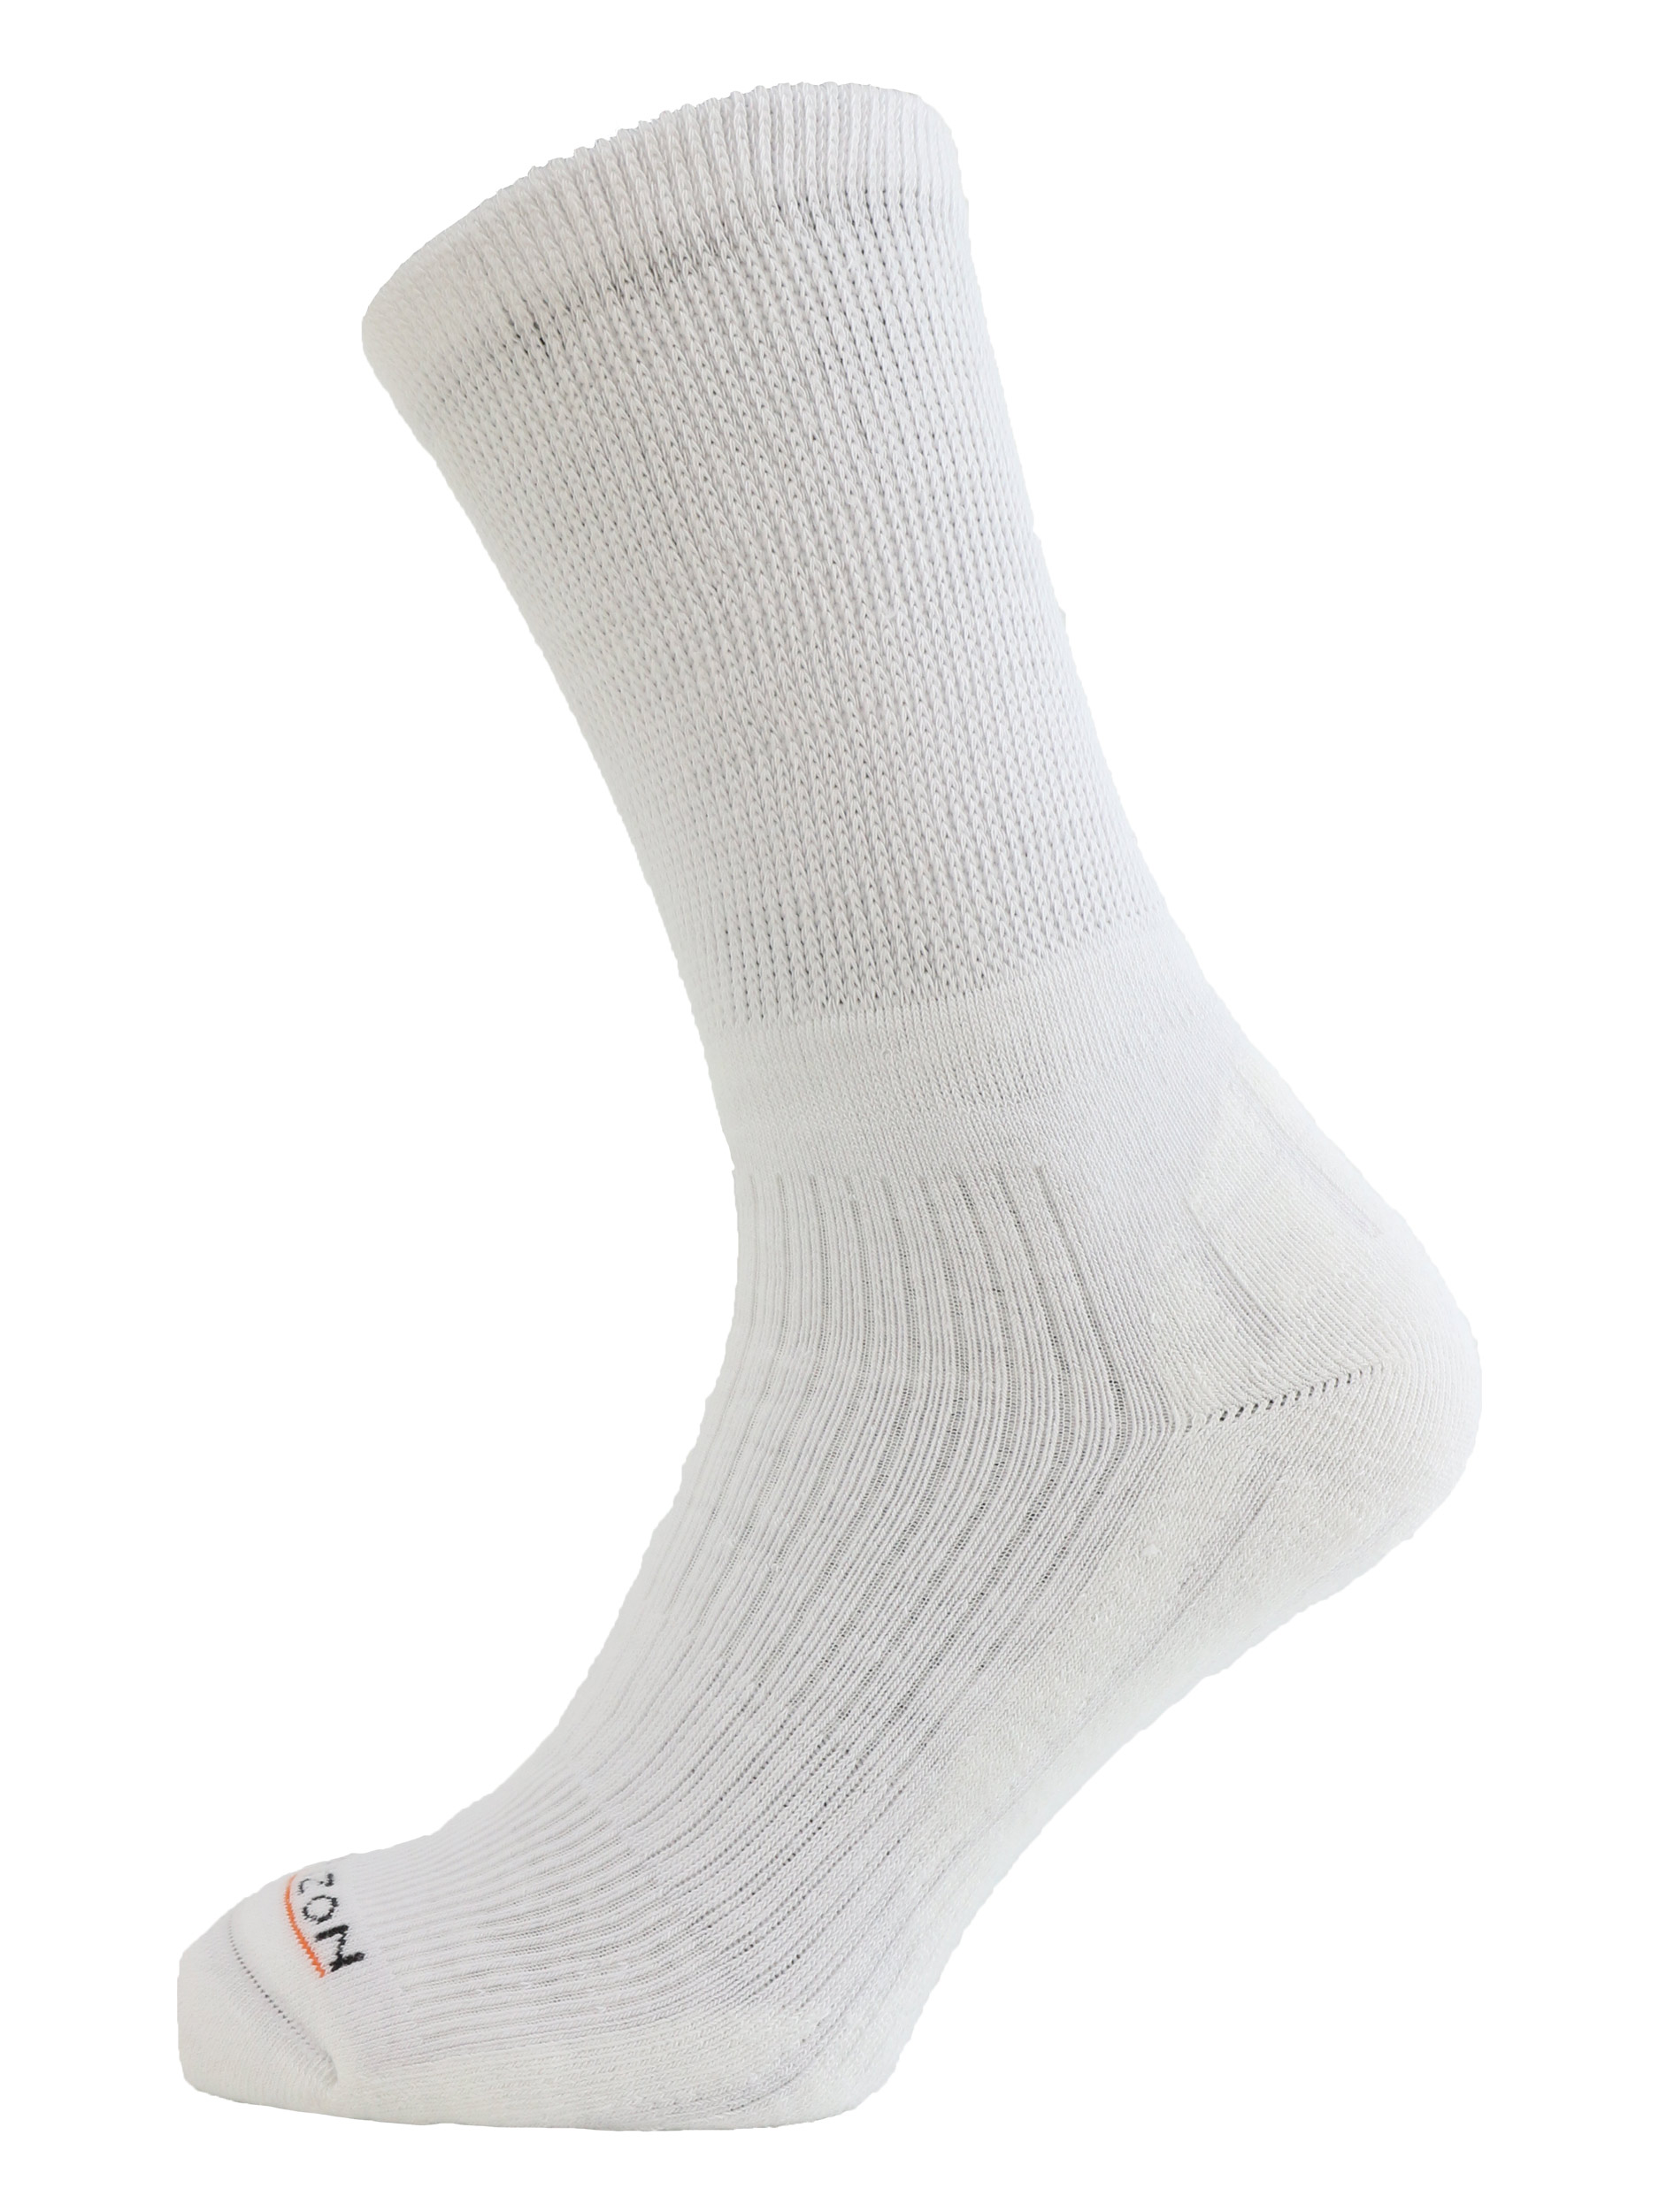 Performance Golf Coolmax Crew Sock White